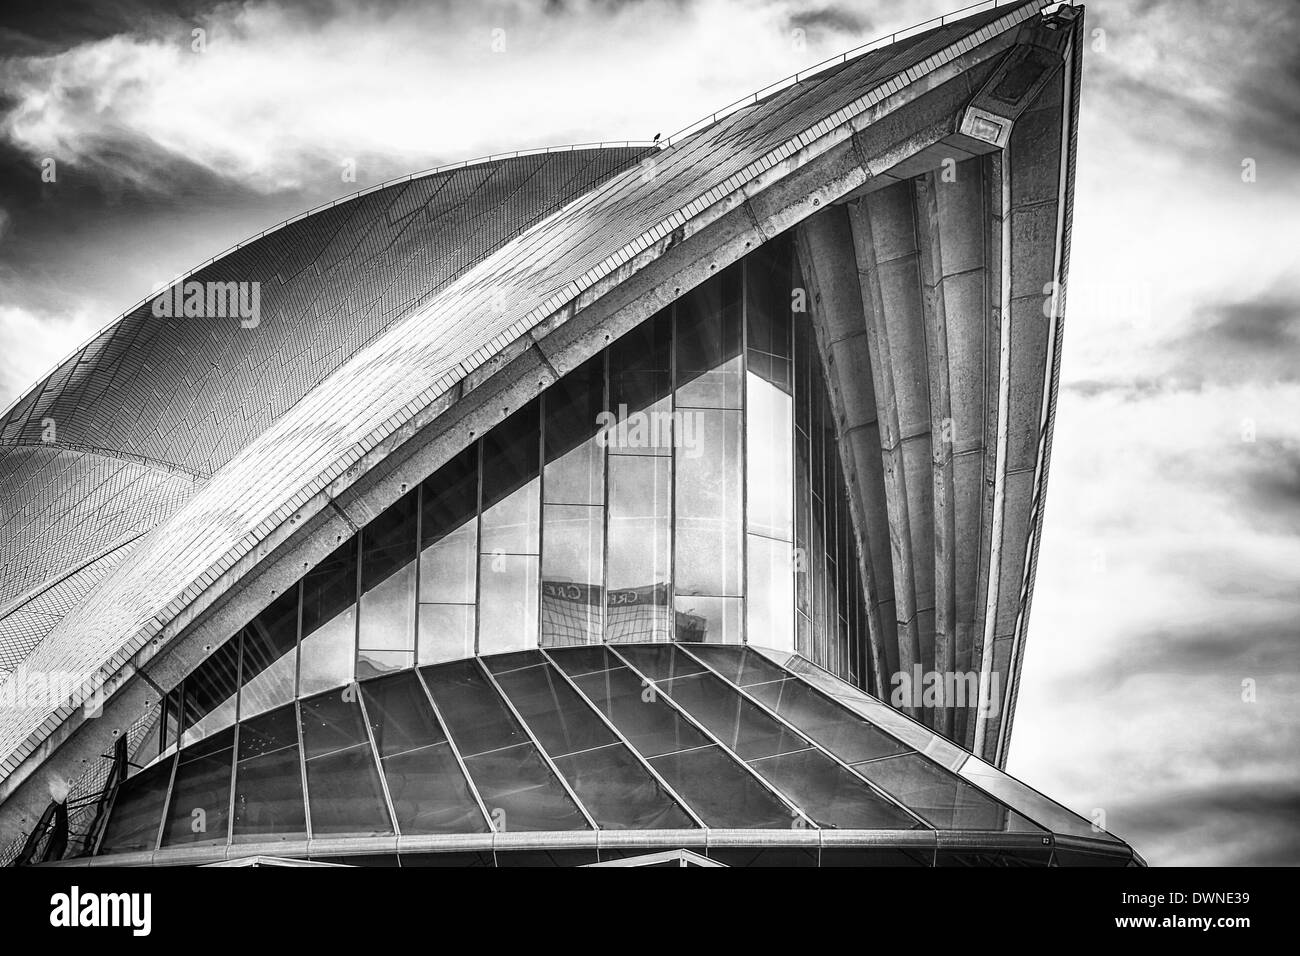 Sydney Opera House Sail Photo Stock